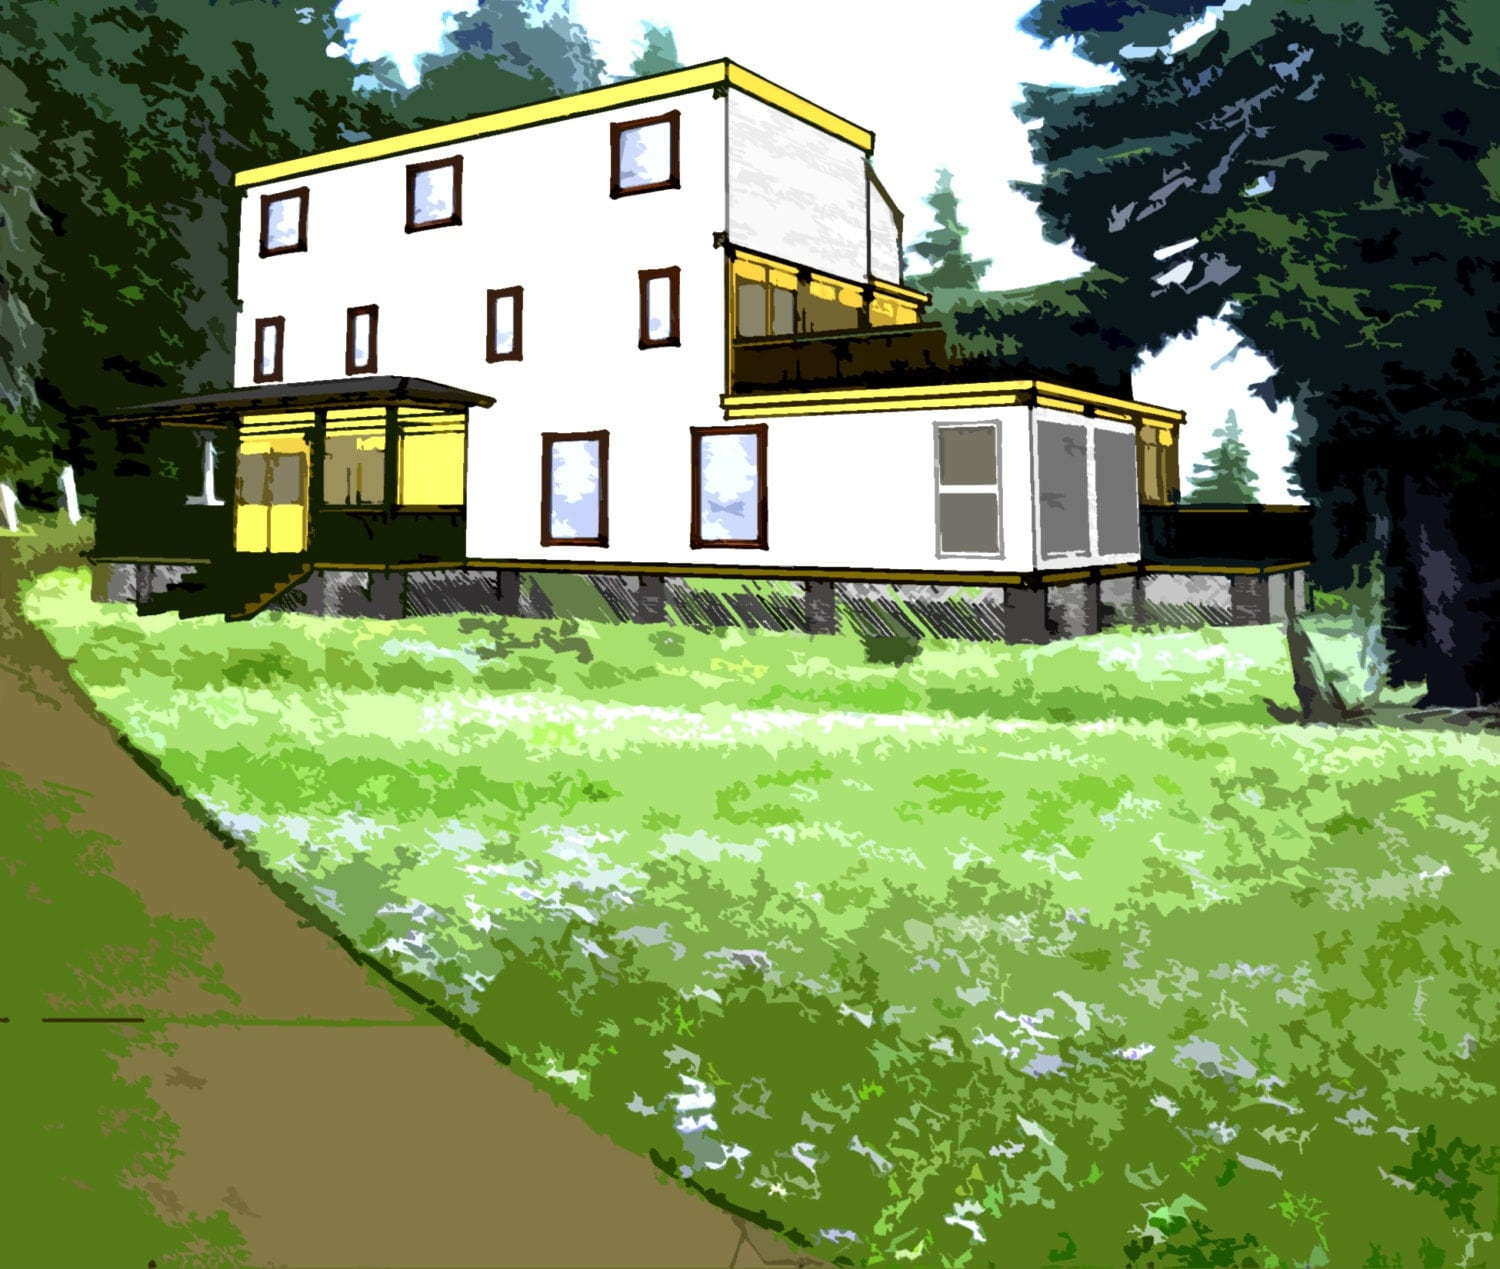 Shipping container house plans 4 bed 4 1 2 bath schematic - Shipping container home design kit download ...